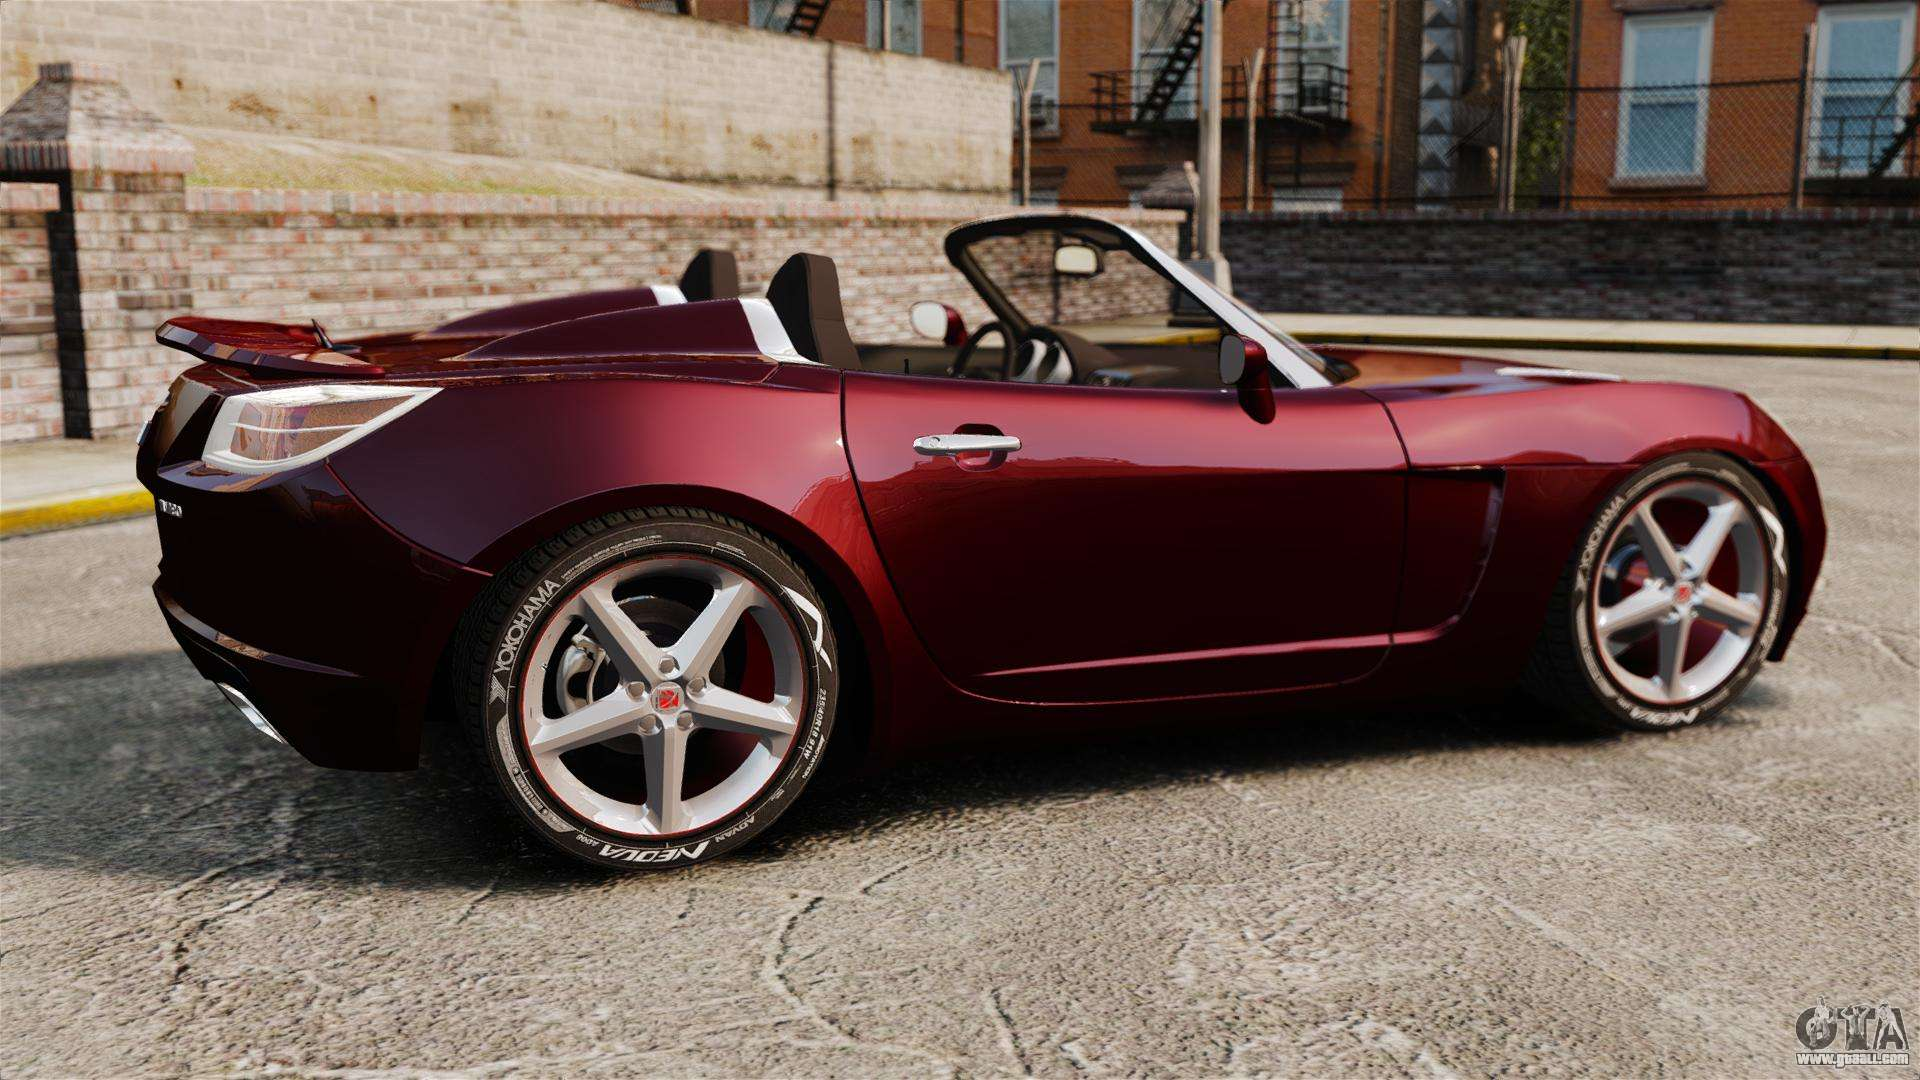 33639 Saturn Sky Red Line Turbo besides Pick Ups Check Chassis besides Milena Velba Pictures Milena Velba Photo Gallery 2014 also 2015 Vw Jetta Tsi Se Review likewise Watch. on rusty toyota